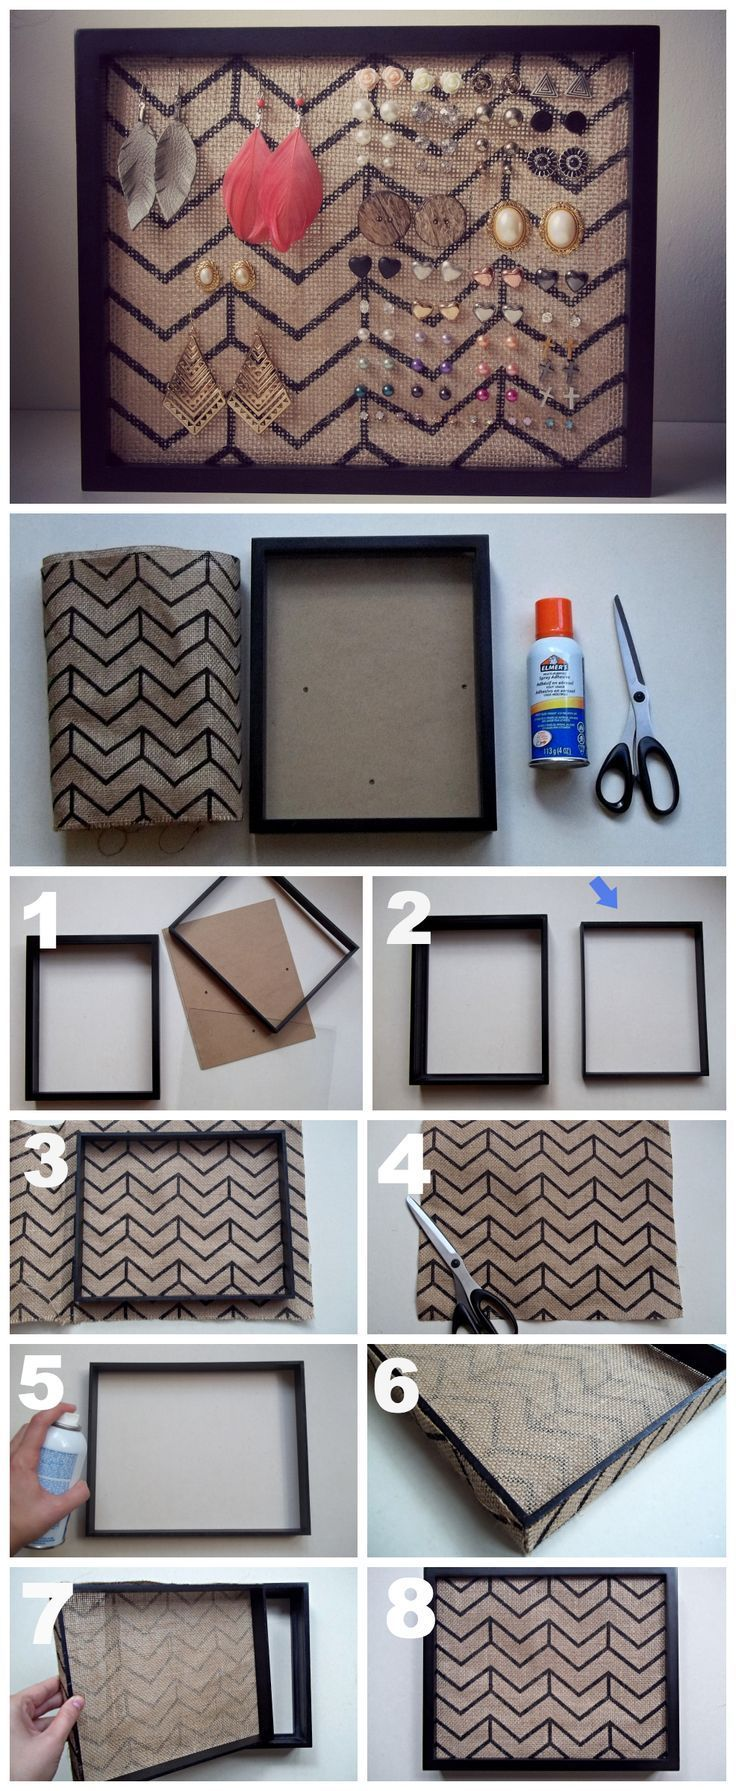 DIY Earring Holder Tutirial Pictures, Photos, and Images for Facebook, Tumblr…